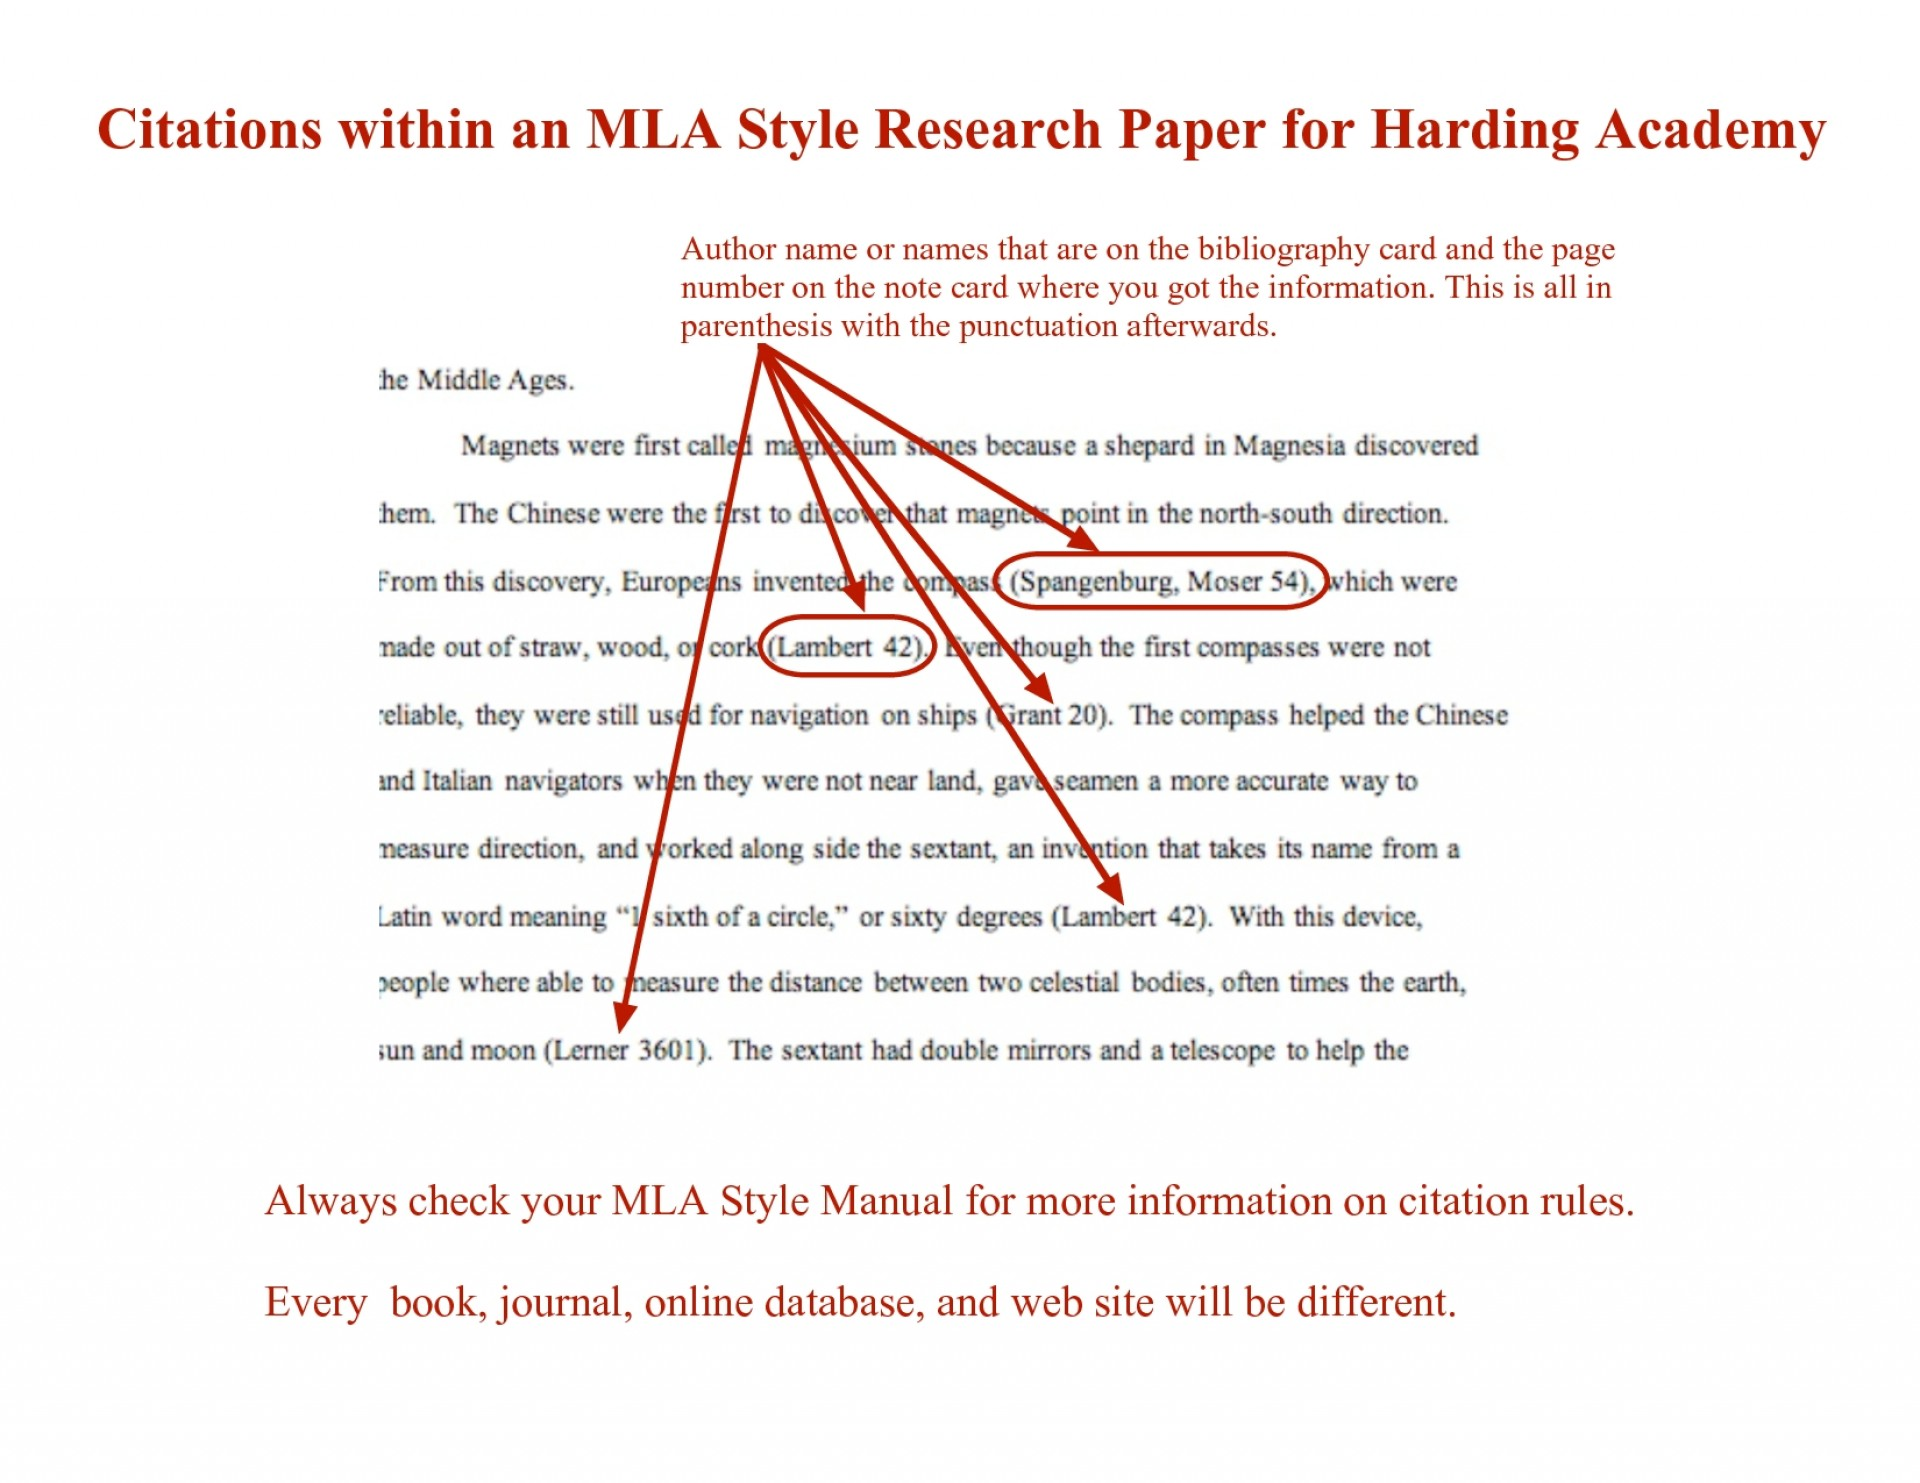 014 How Do You Cite An Essay To Sources In Citation Mla Twenty Hueandi Co Collection Of Solutions Quote From Website Stunning Research Papes Essays Apa Exceptional Wikipedia Text A Book Harvard Format 1920